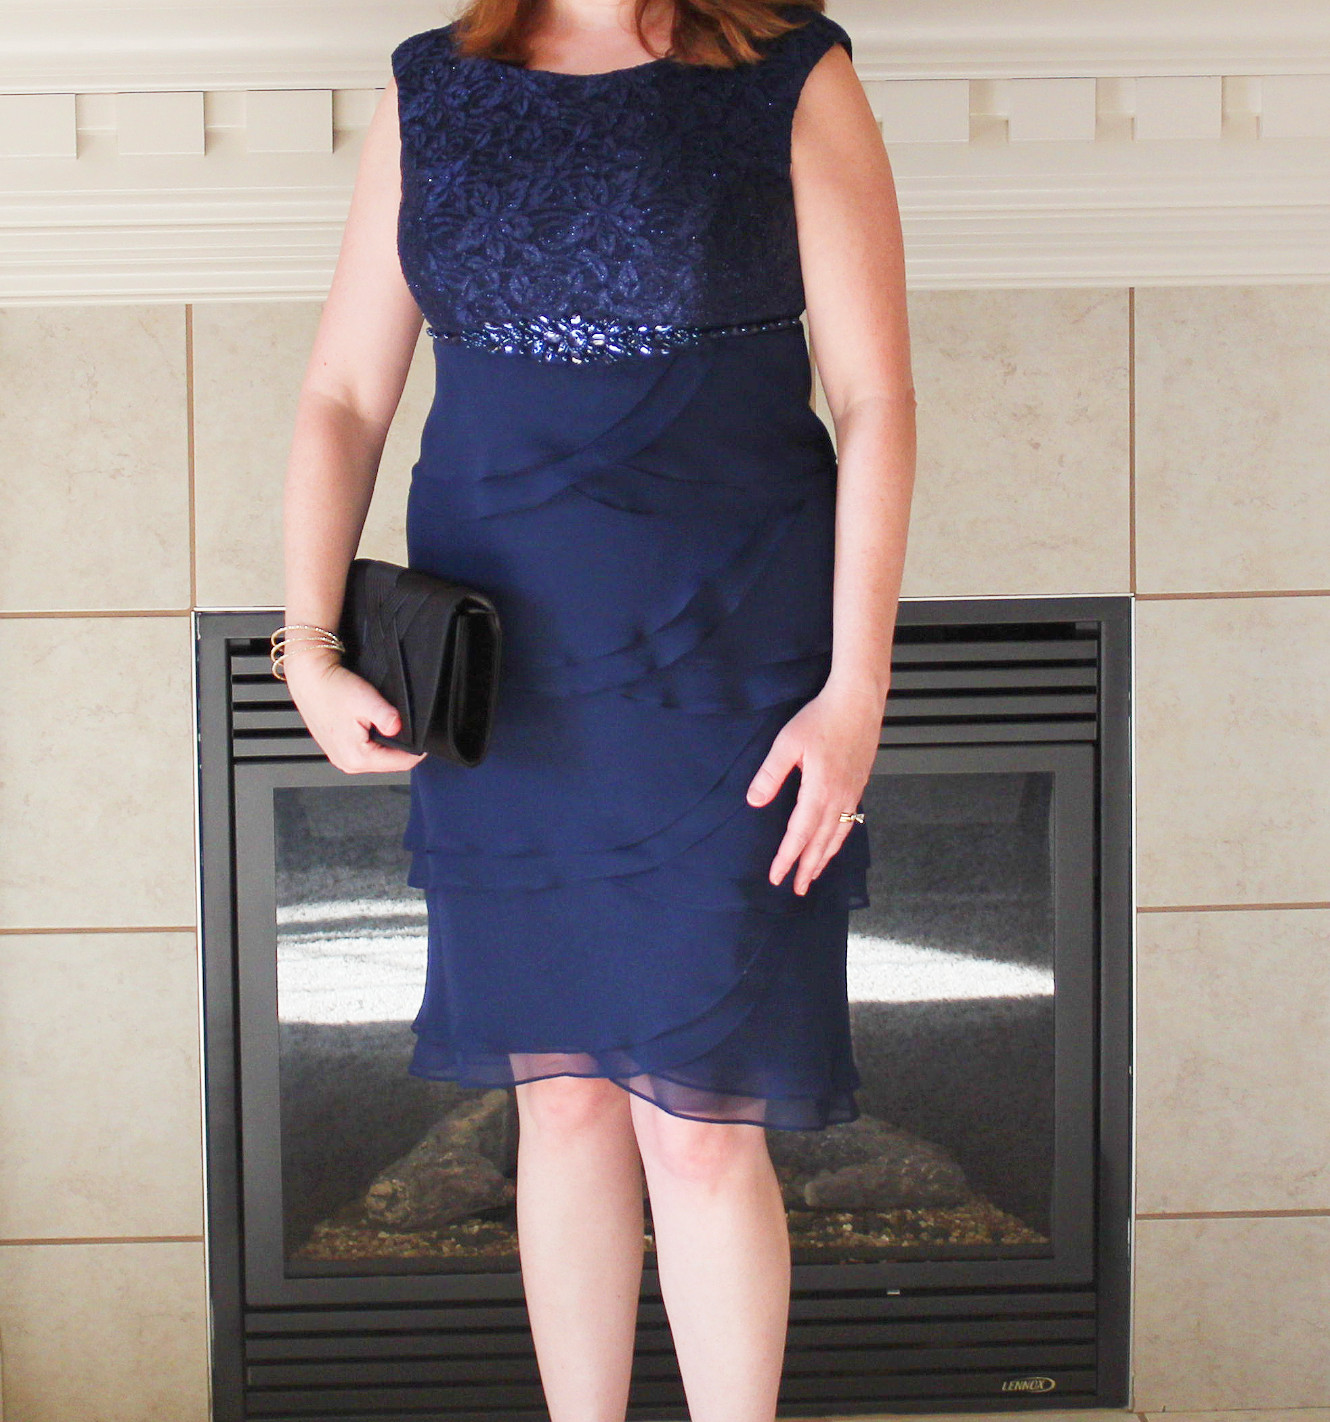 Sequined Bodice Of Navy Blue Dress